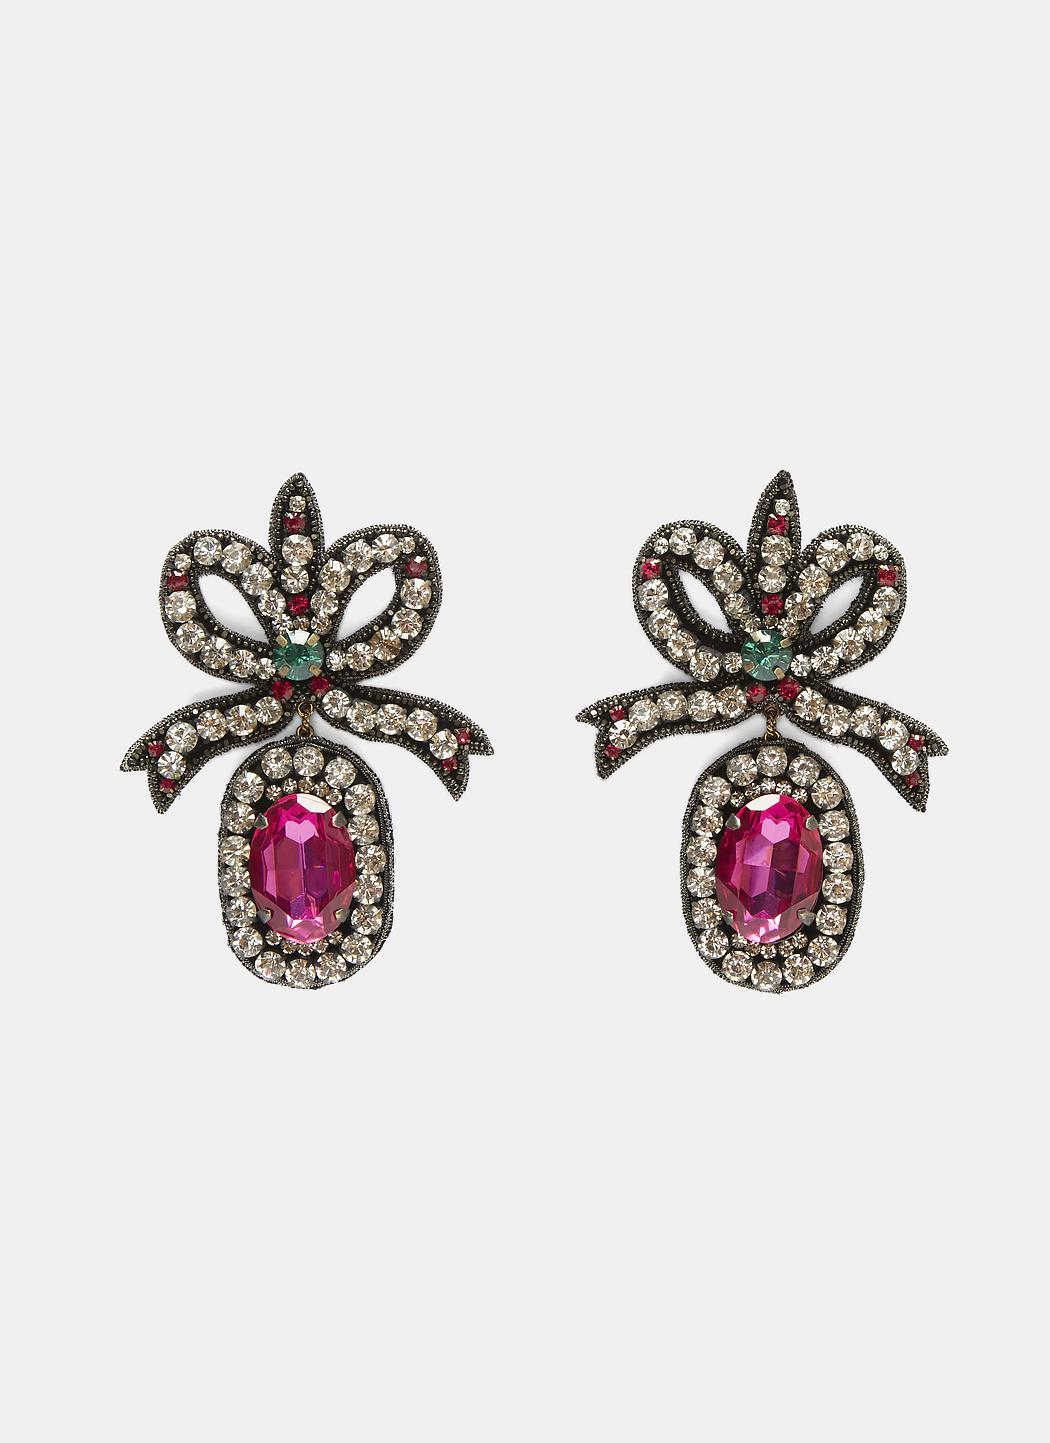 96eef1c60 Gucci Crystal- Embroidered Bow Earrings In Black And Pink in Black ...